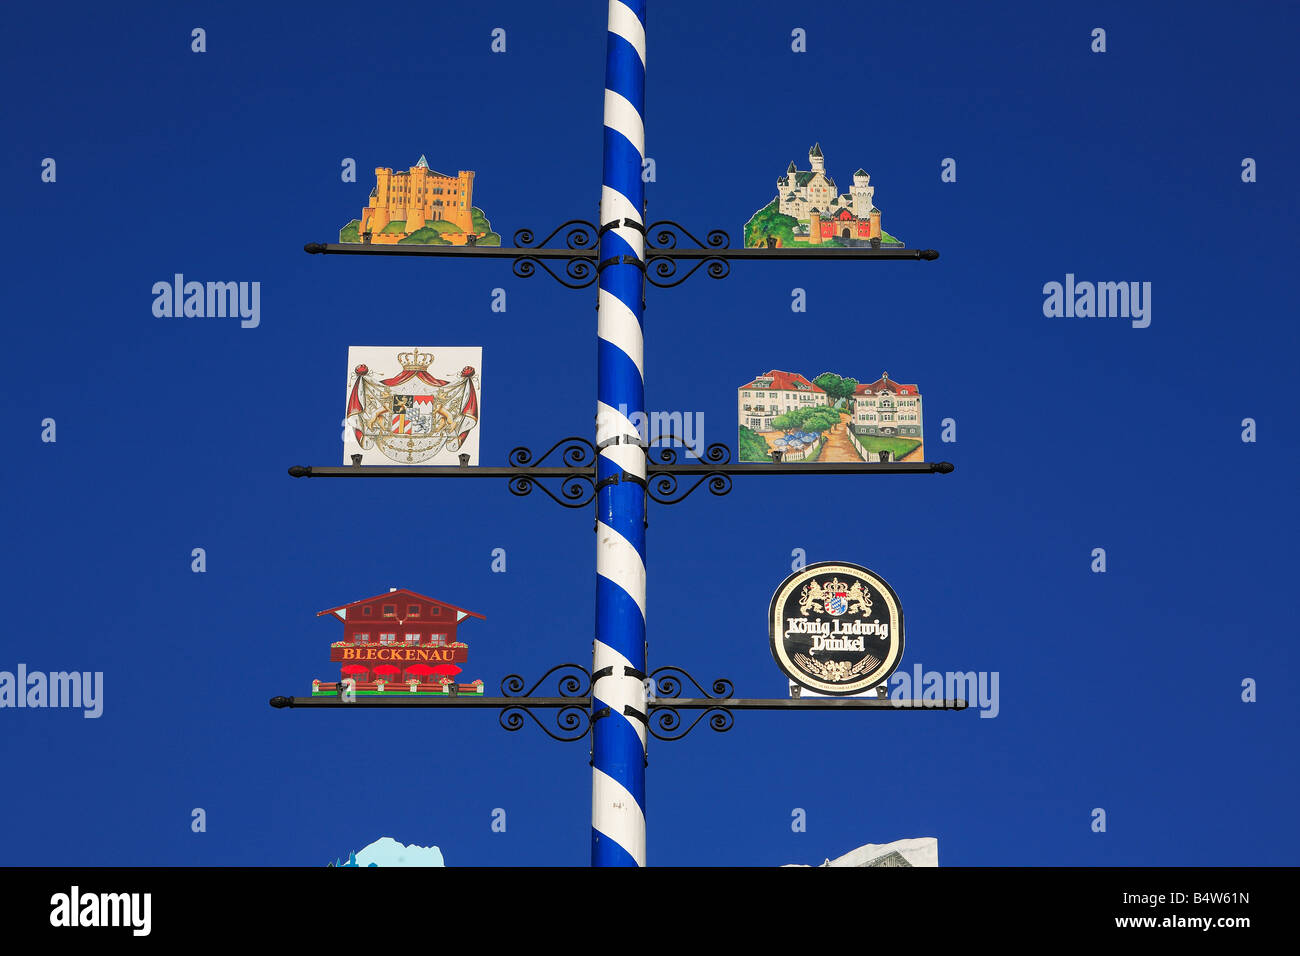 bavarian maypole with signs for the castles of Neuschwanstein and Hohenschwangau - Stock Image